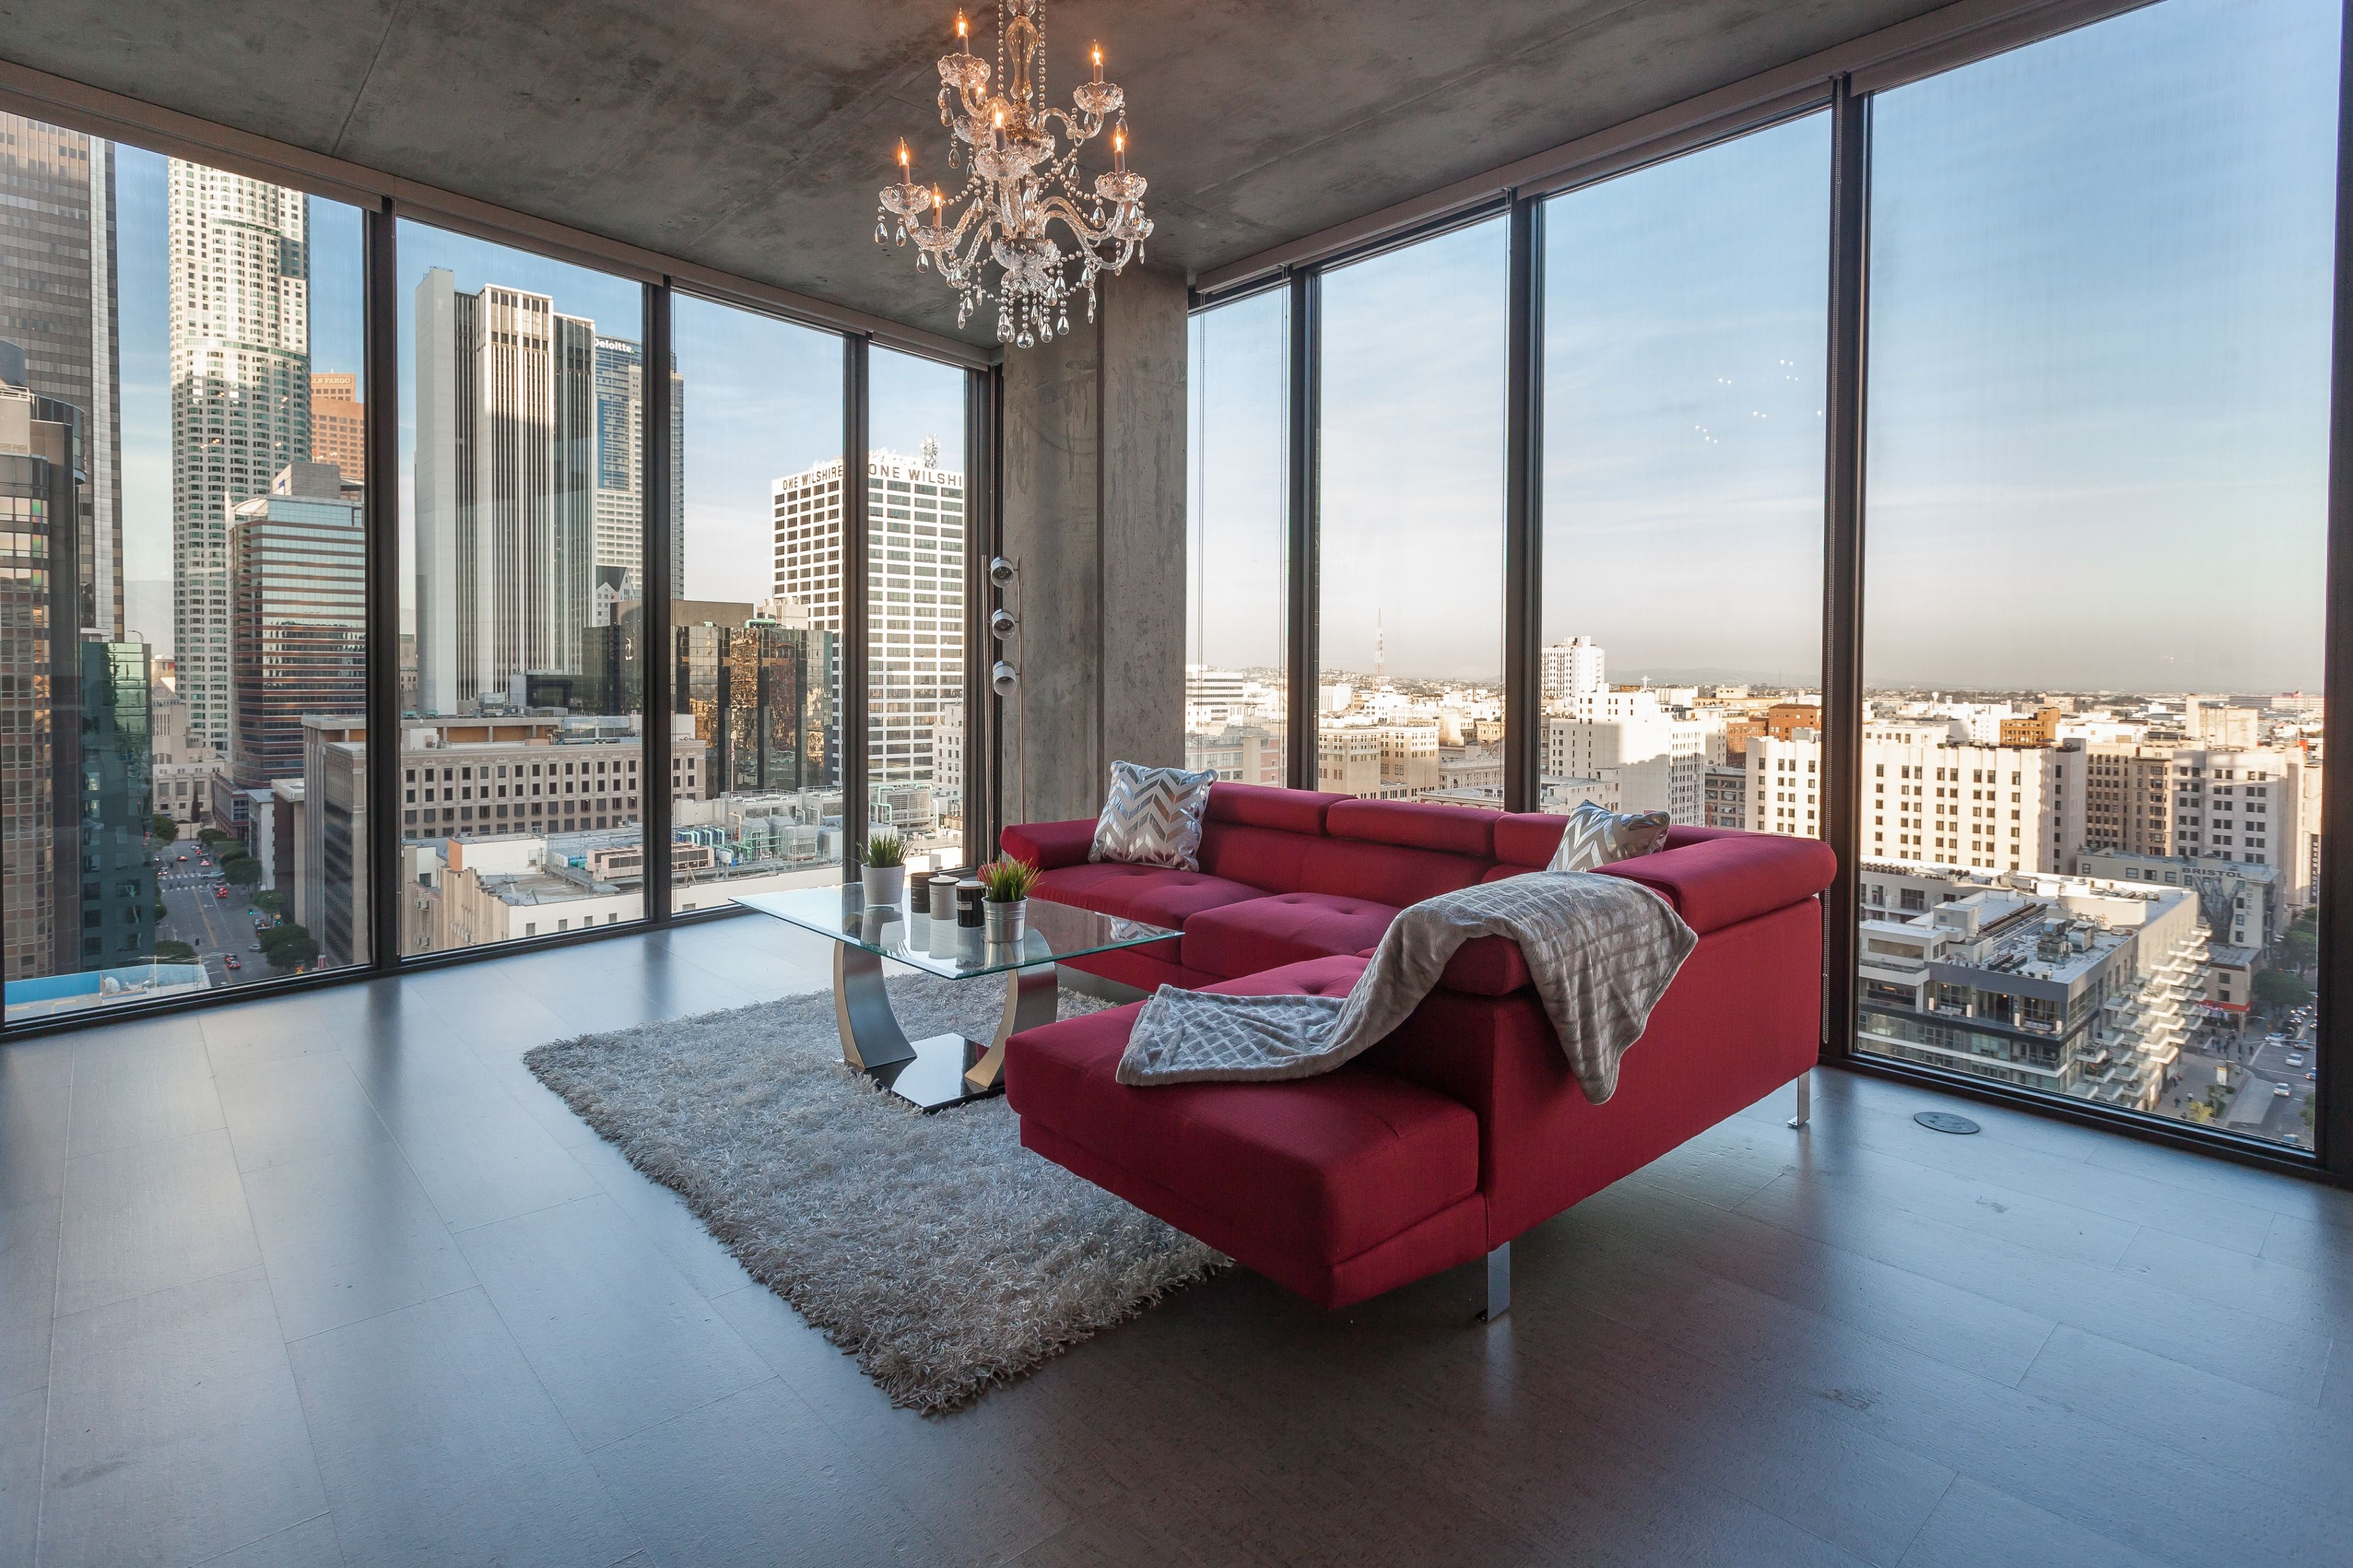 Check Out This Great Off Site Space On Peerspace Com Urban Dtla